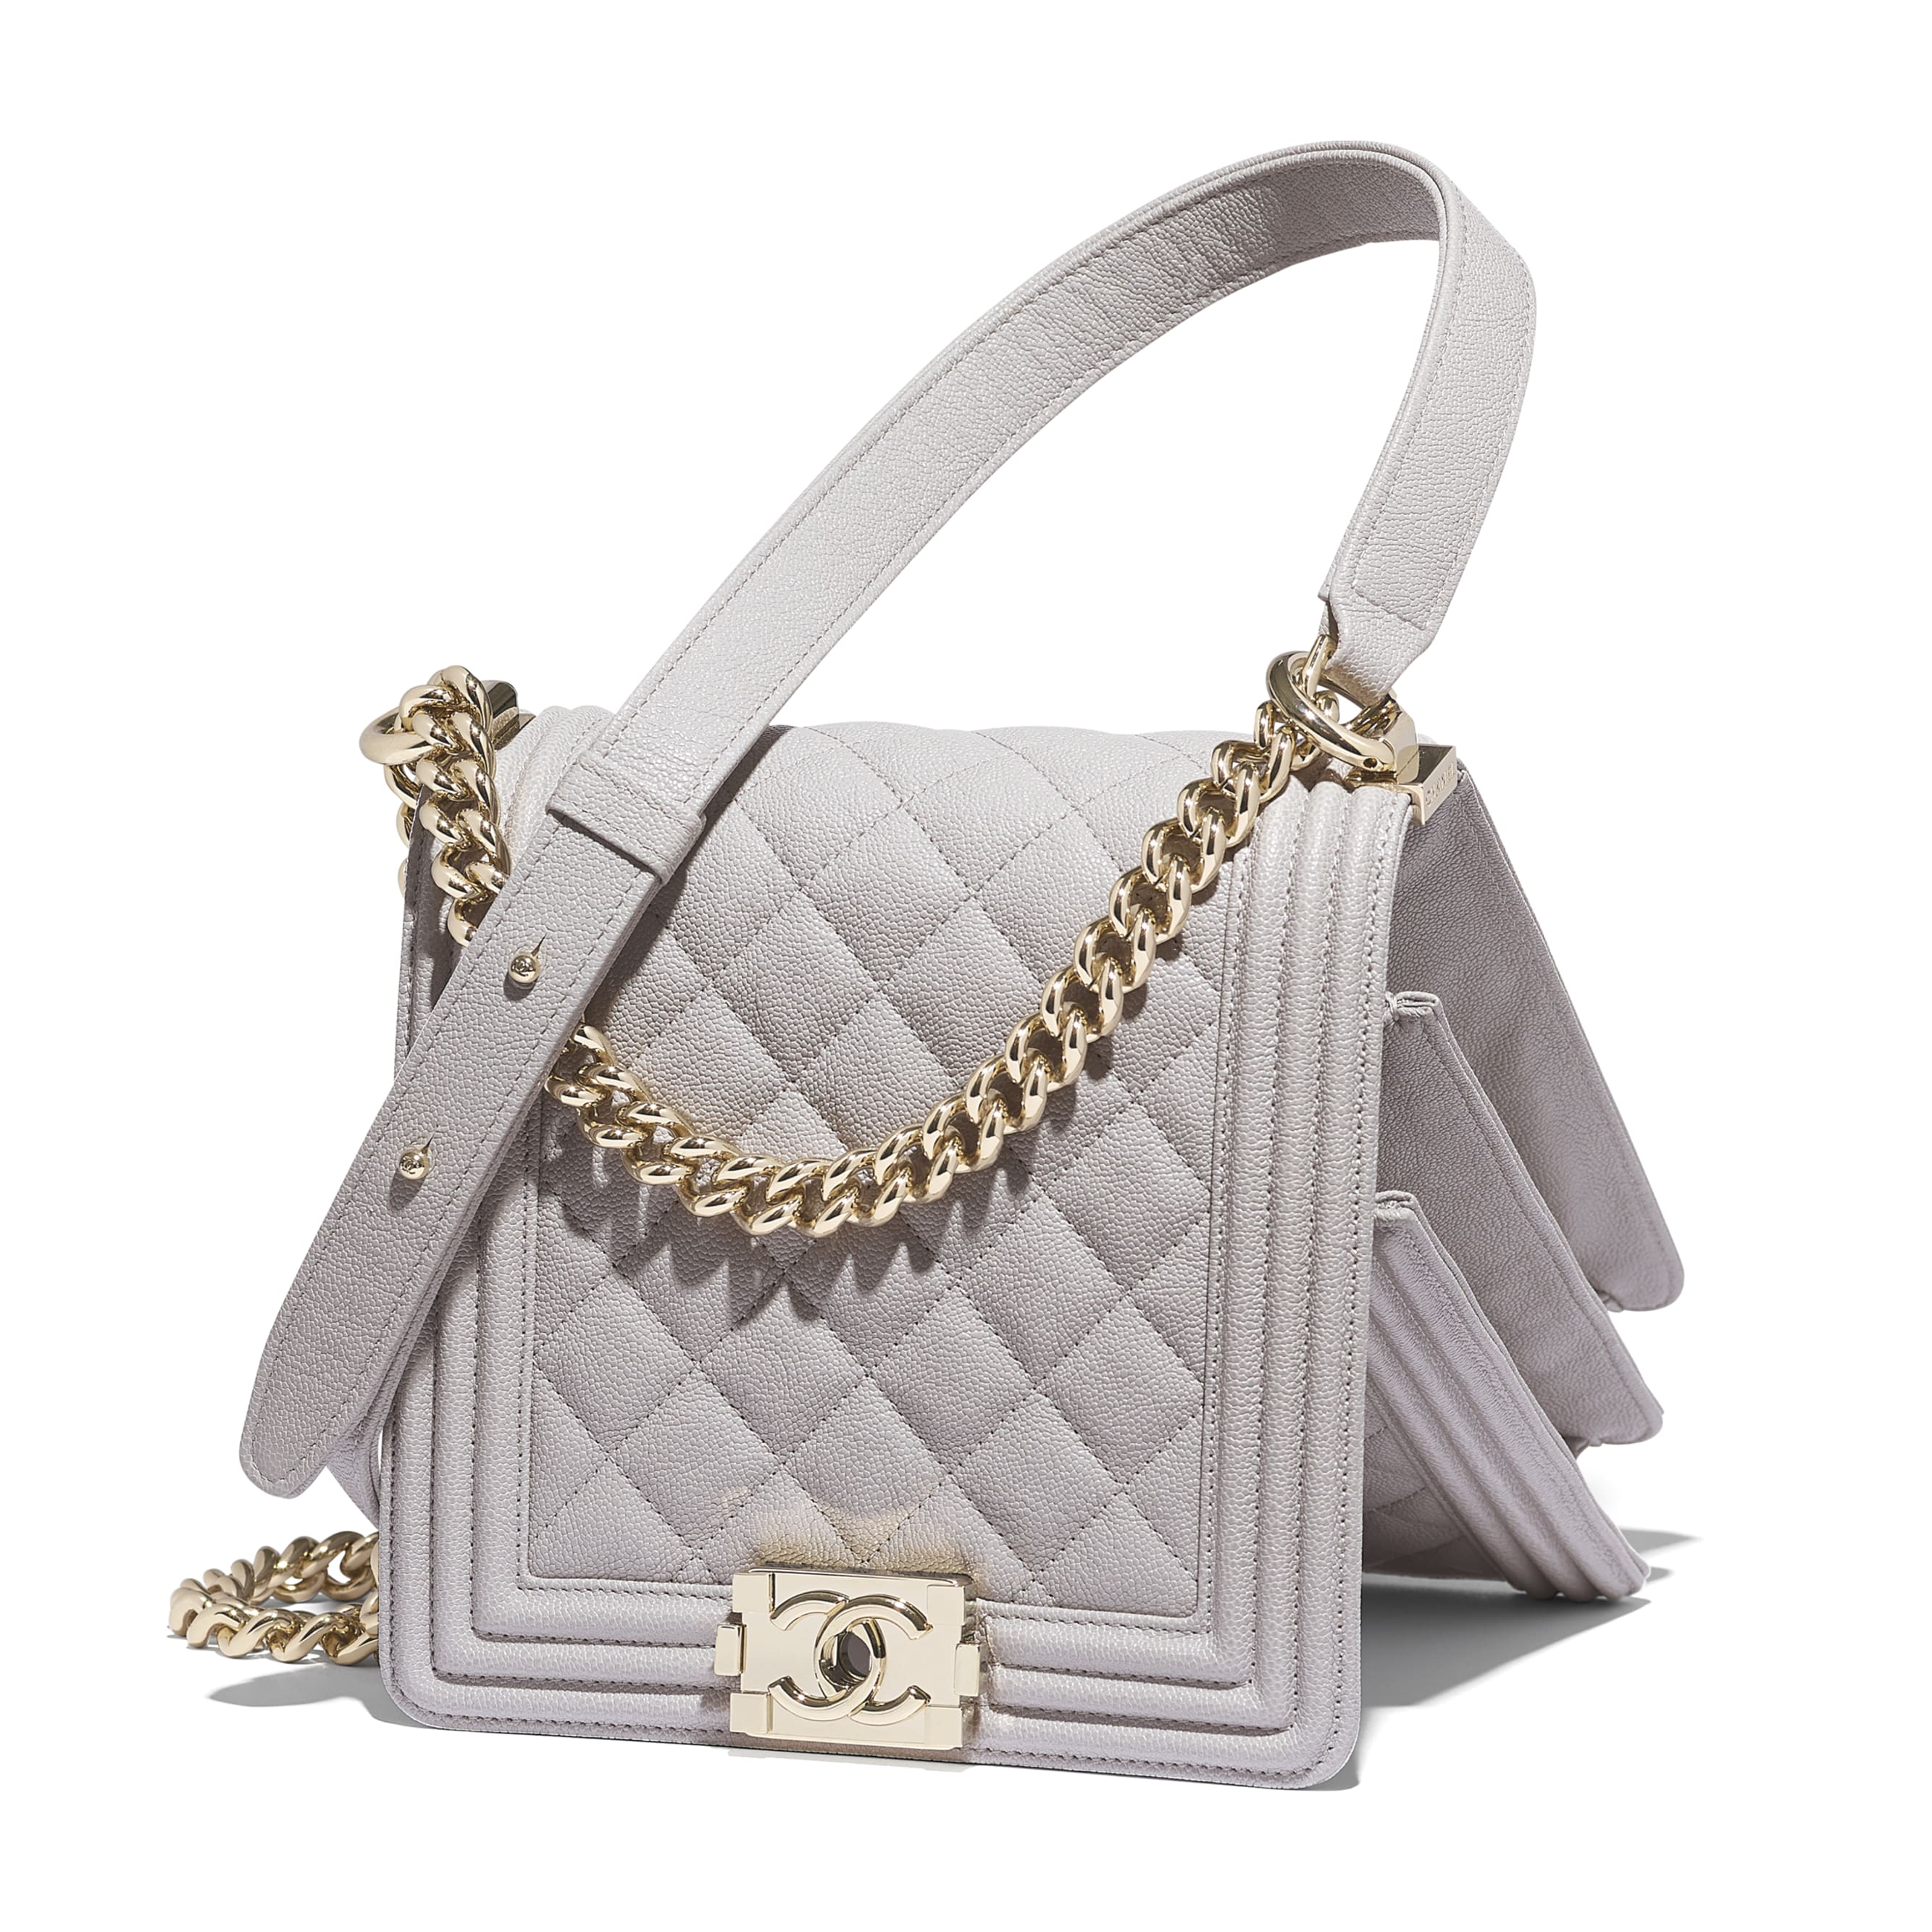 BOY CHANEL Handbag - Grey - Grained Calfskin & Gold-Tone Metal - Extra view - see standard sized version